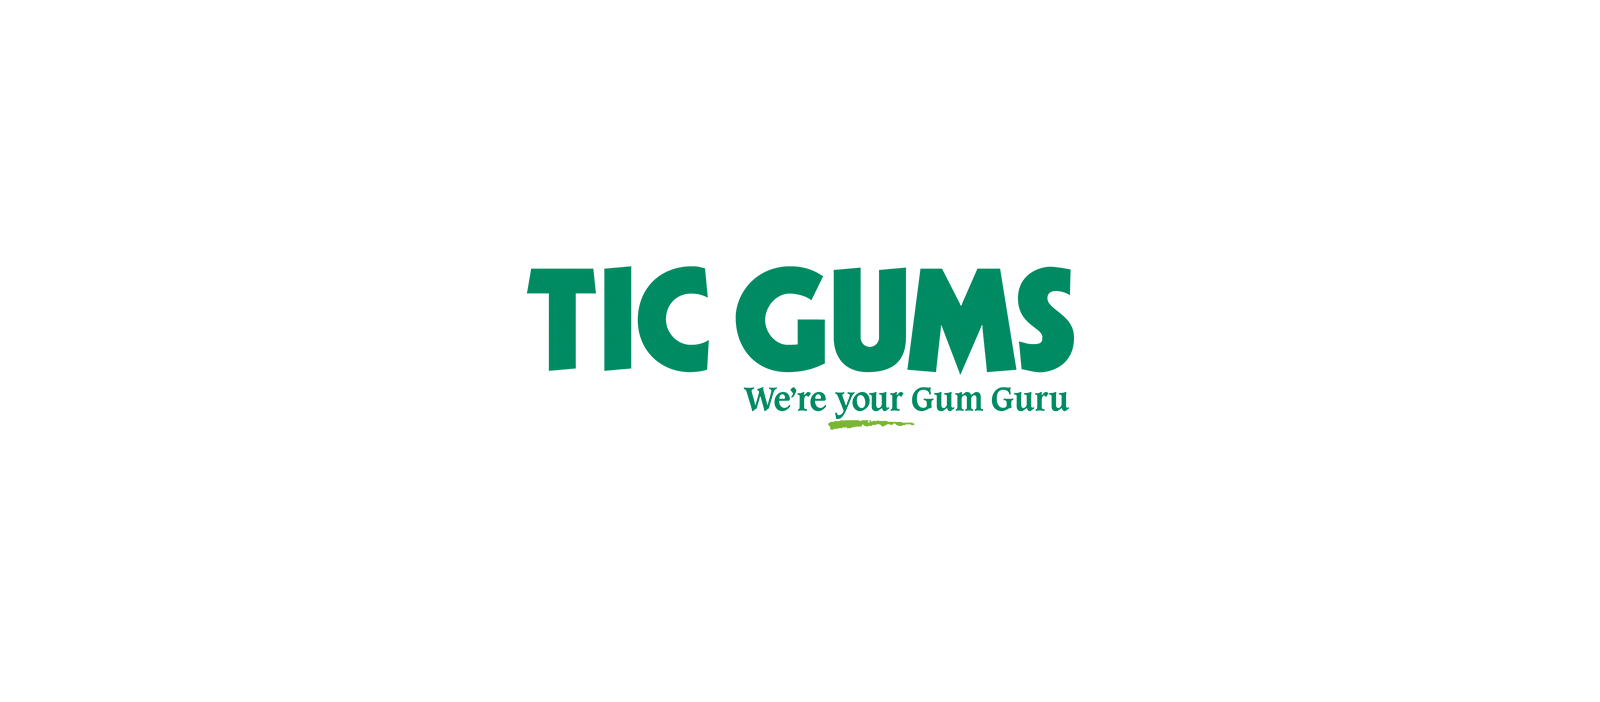 TIC Gums: We're your Gum Guru